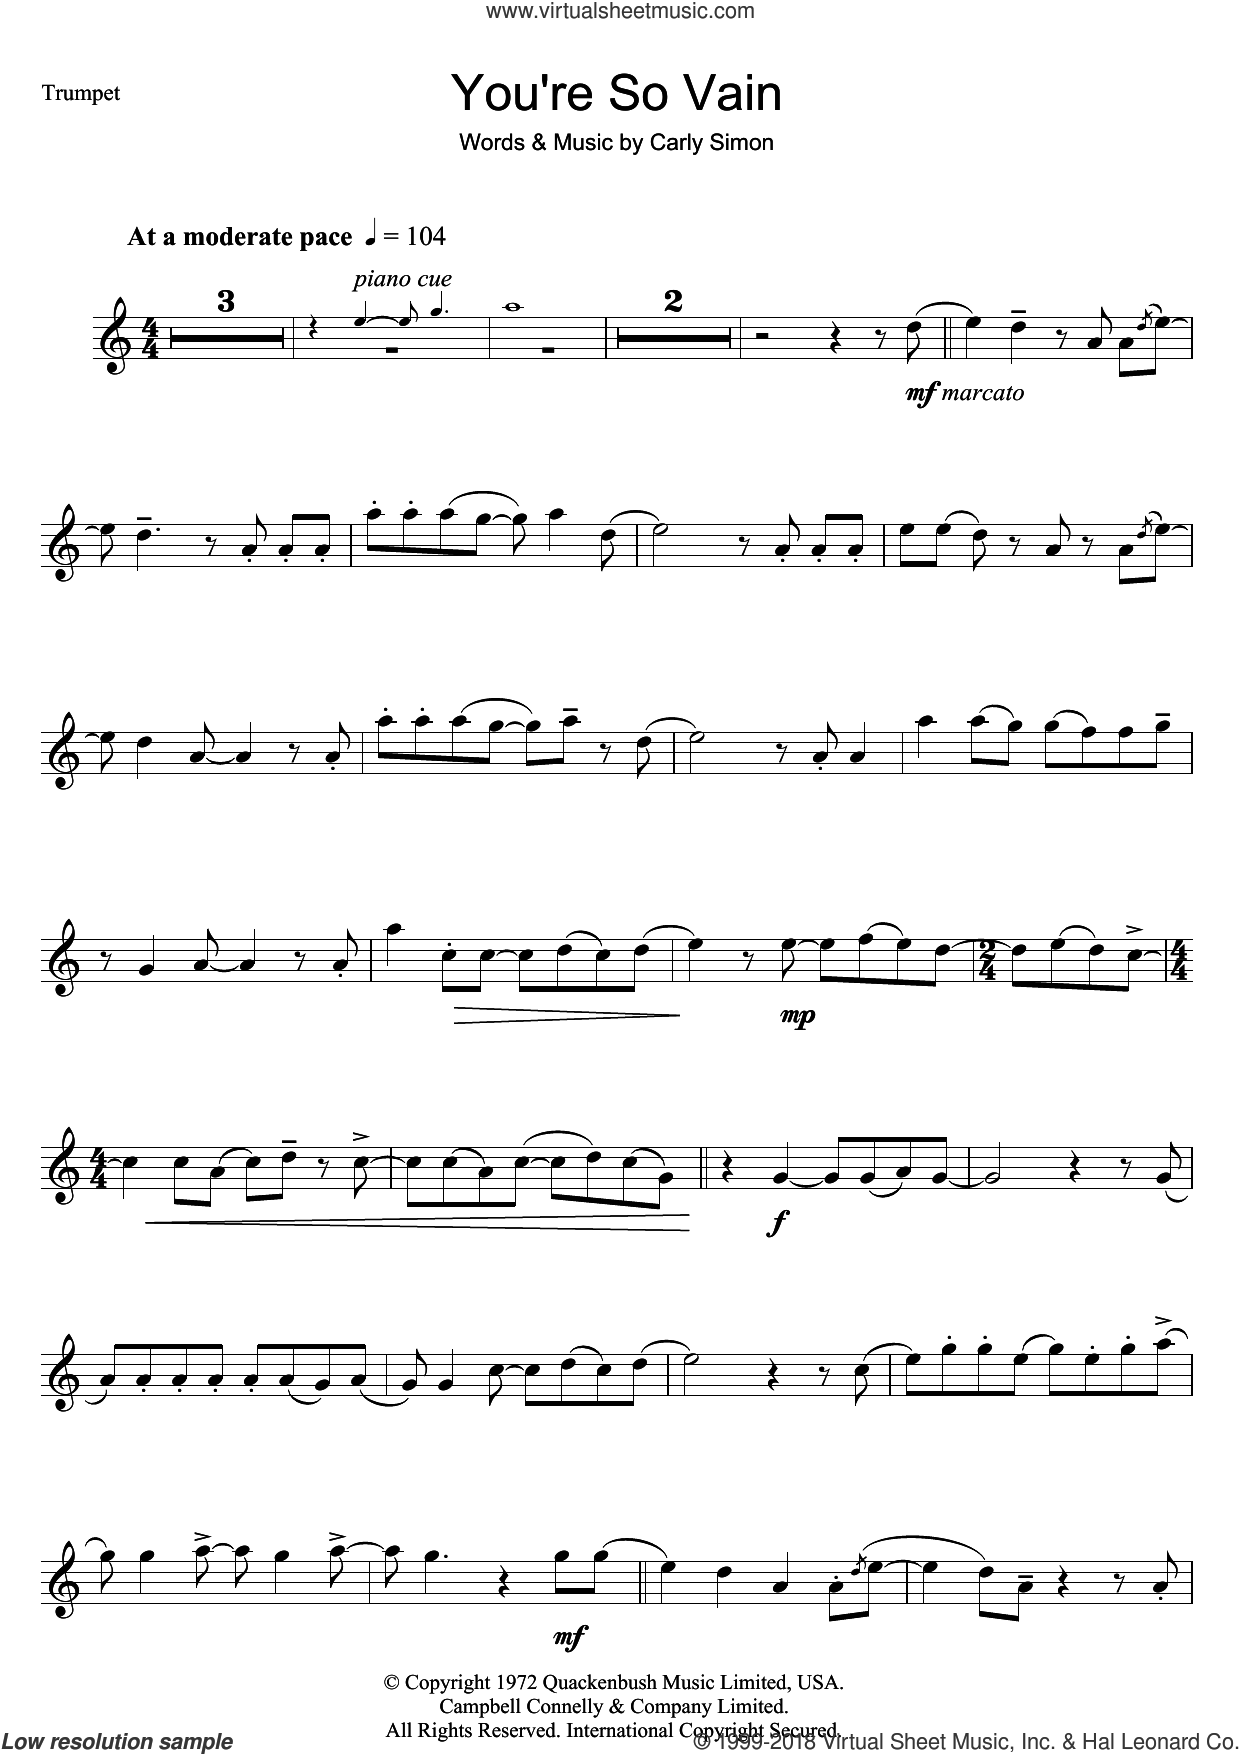 You're So Vain sheet music for trumpet solo by Carly Simon, intermediate skill level